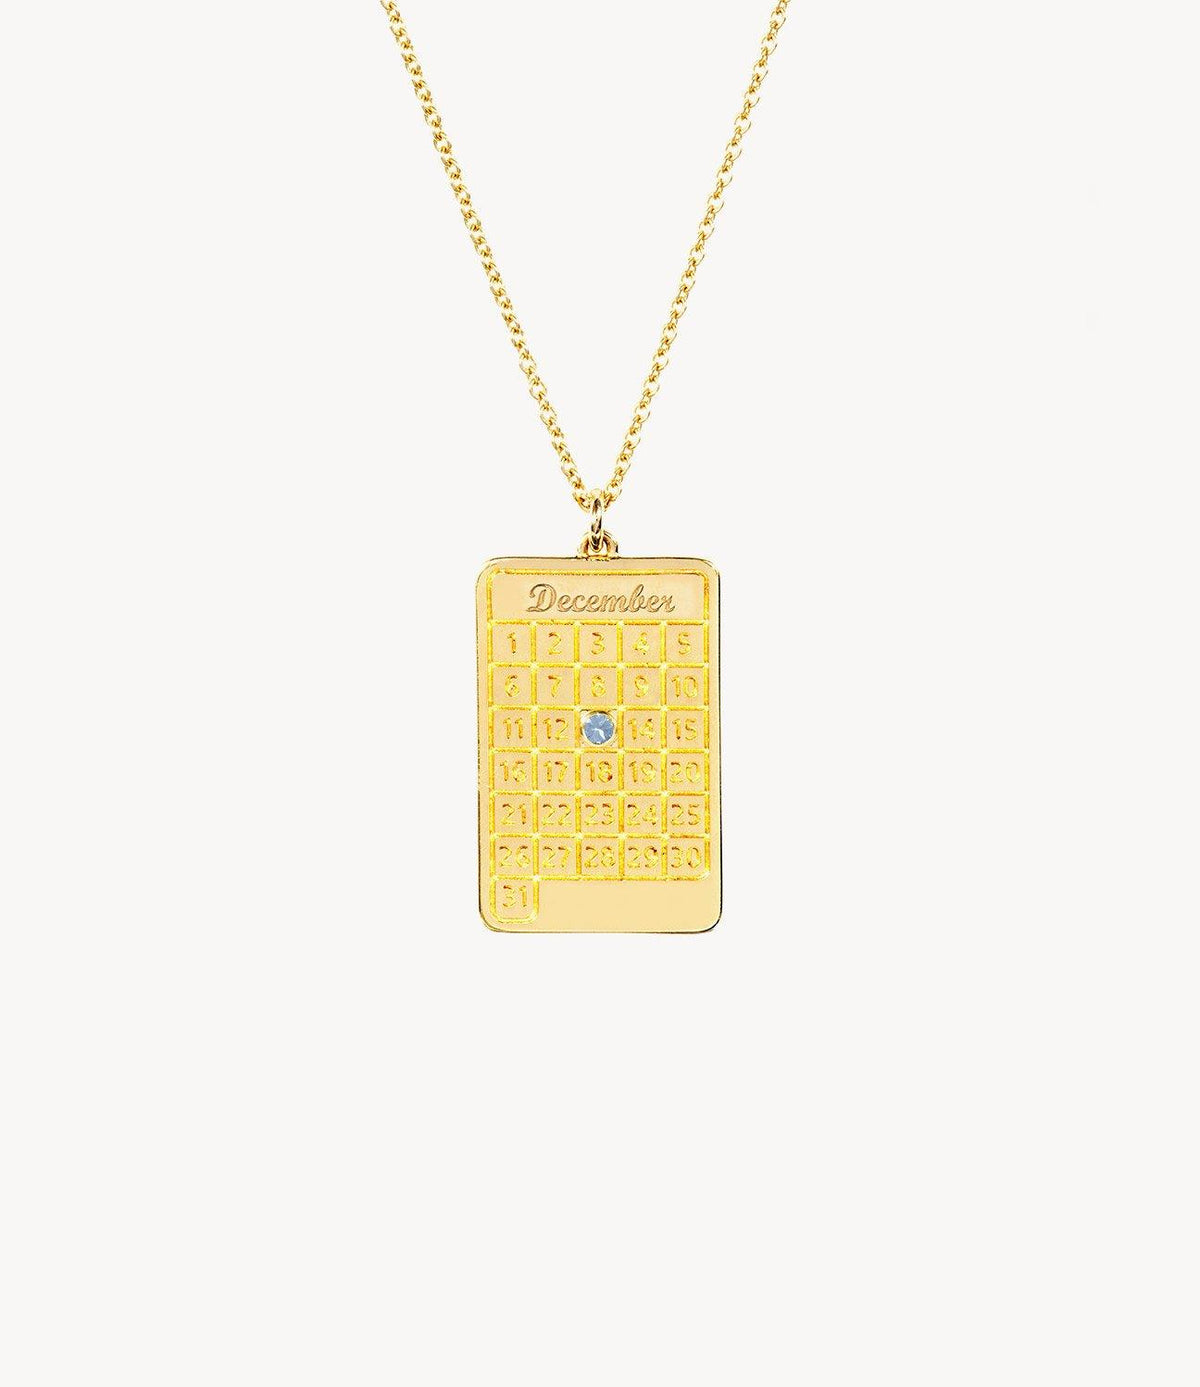 Yellow Gold, Diamond Days Necklace